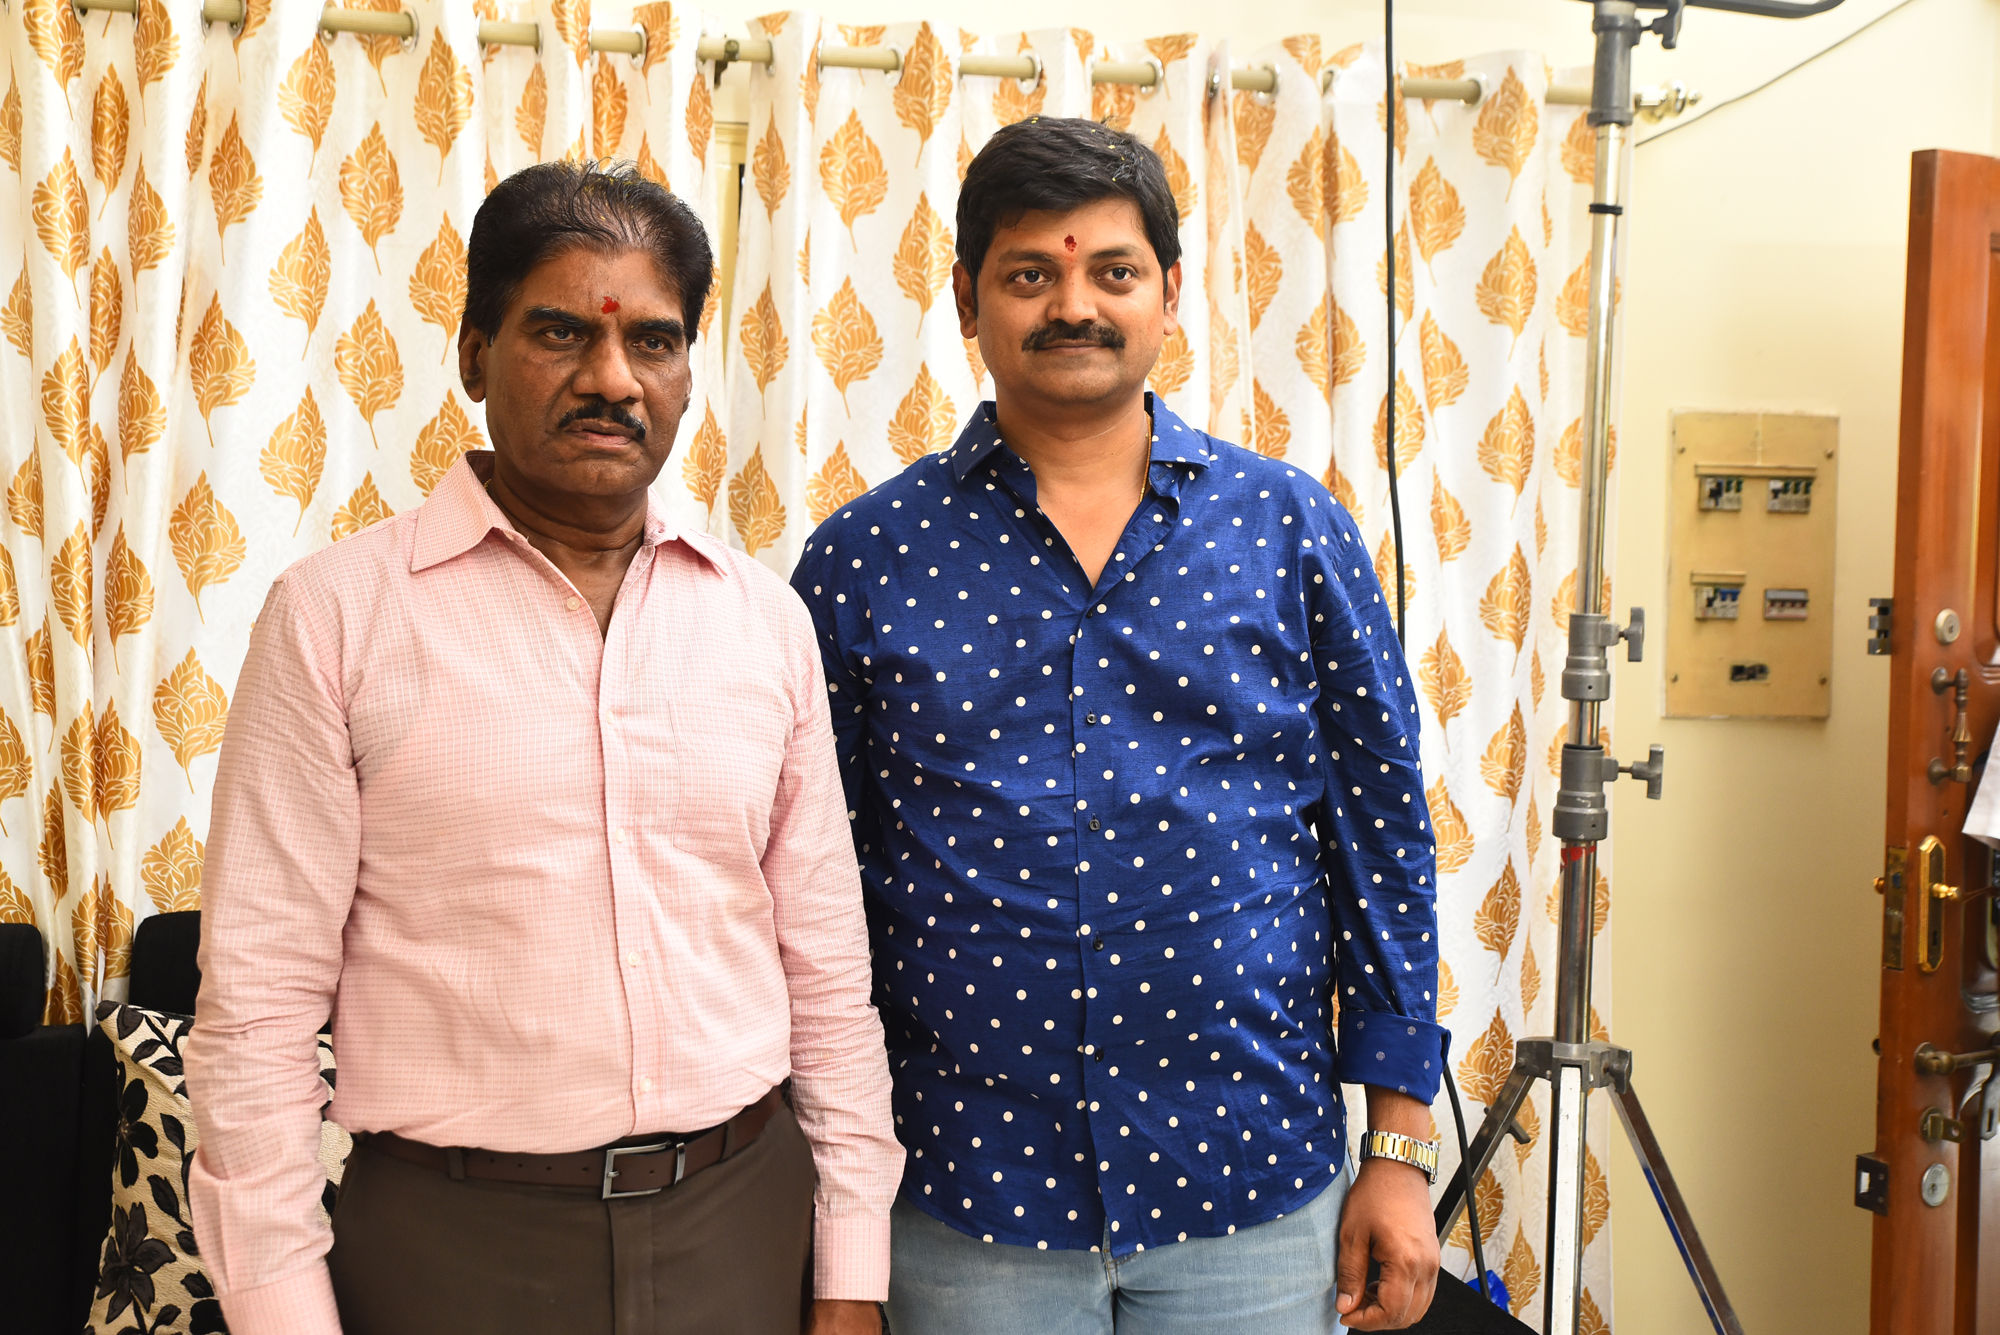 Raj Tarun Starrer Directed By Konda Vijaykumar In KK Radhamohan's Production Launched With Pooja Ceremony